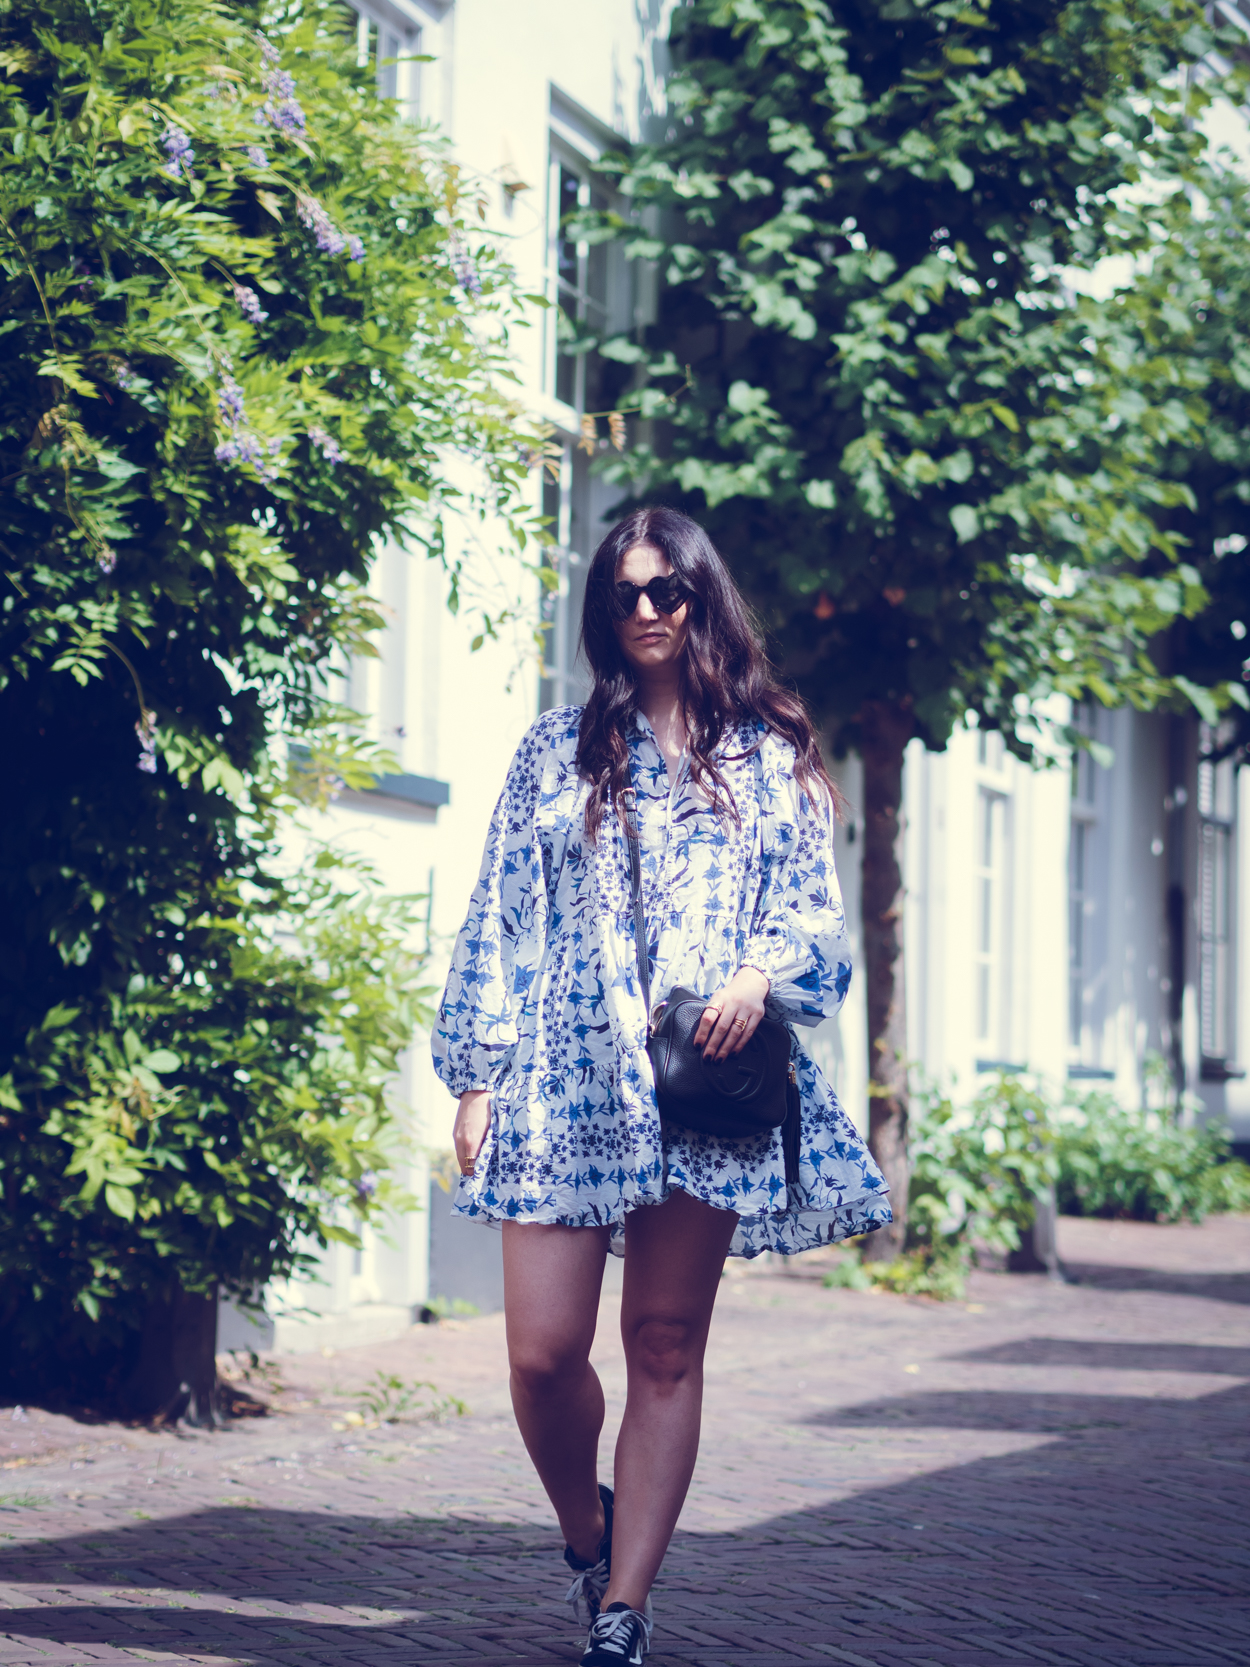 THE 7 SUMMER WARDROBE ITEMS TO PACK FOR YOUR NEXT HOLIDAY   THE CHIC ITALIAN   The 7 summer wardrobe items I'm taking with me on my next summer holiday